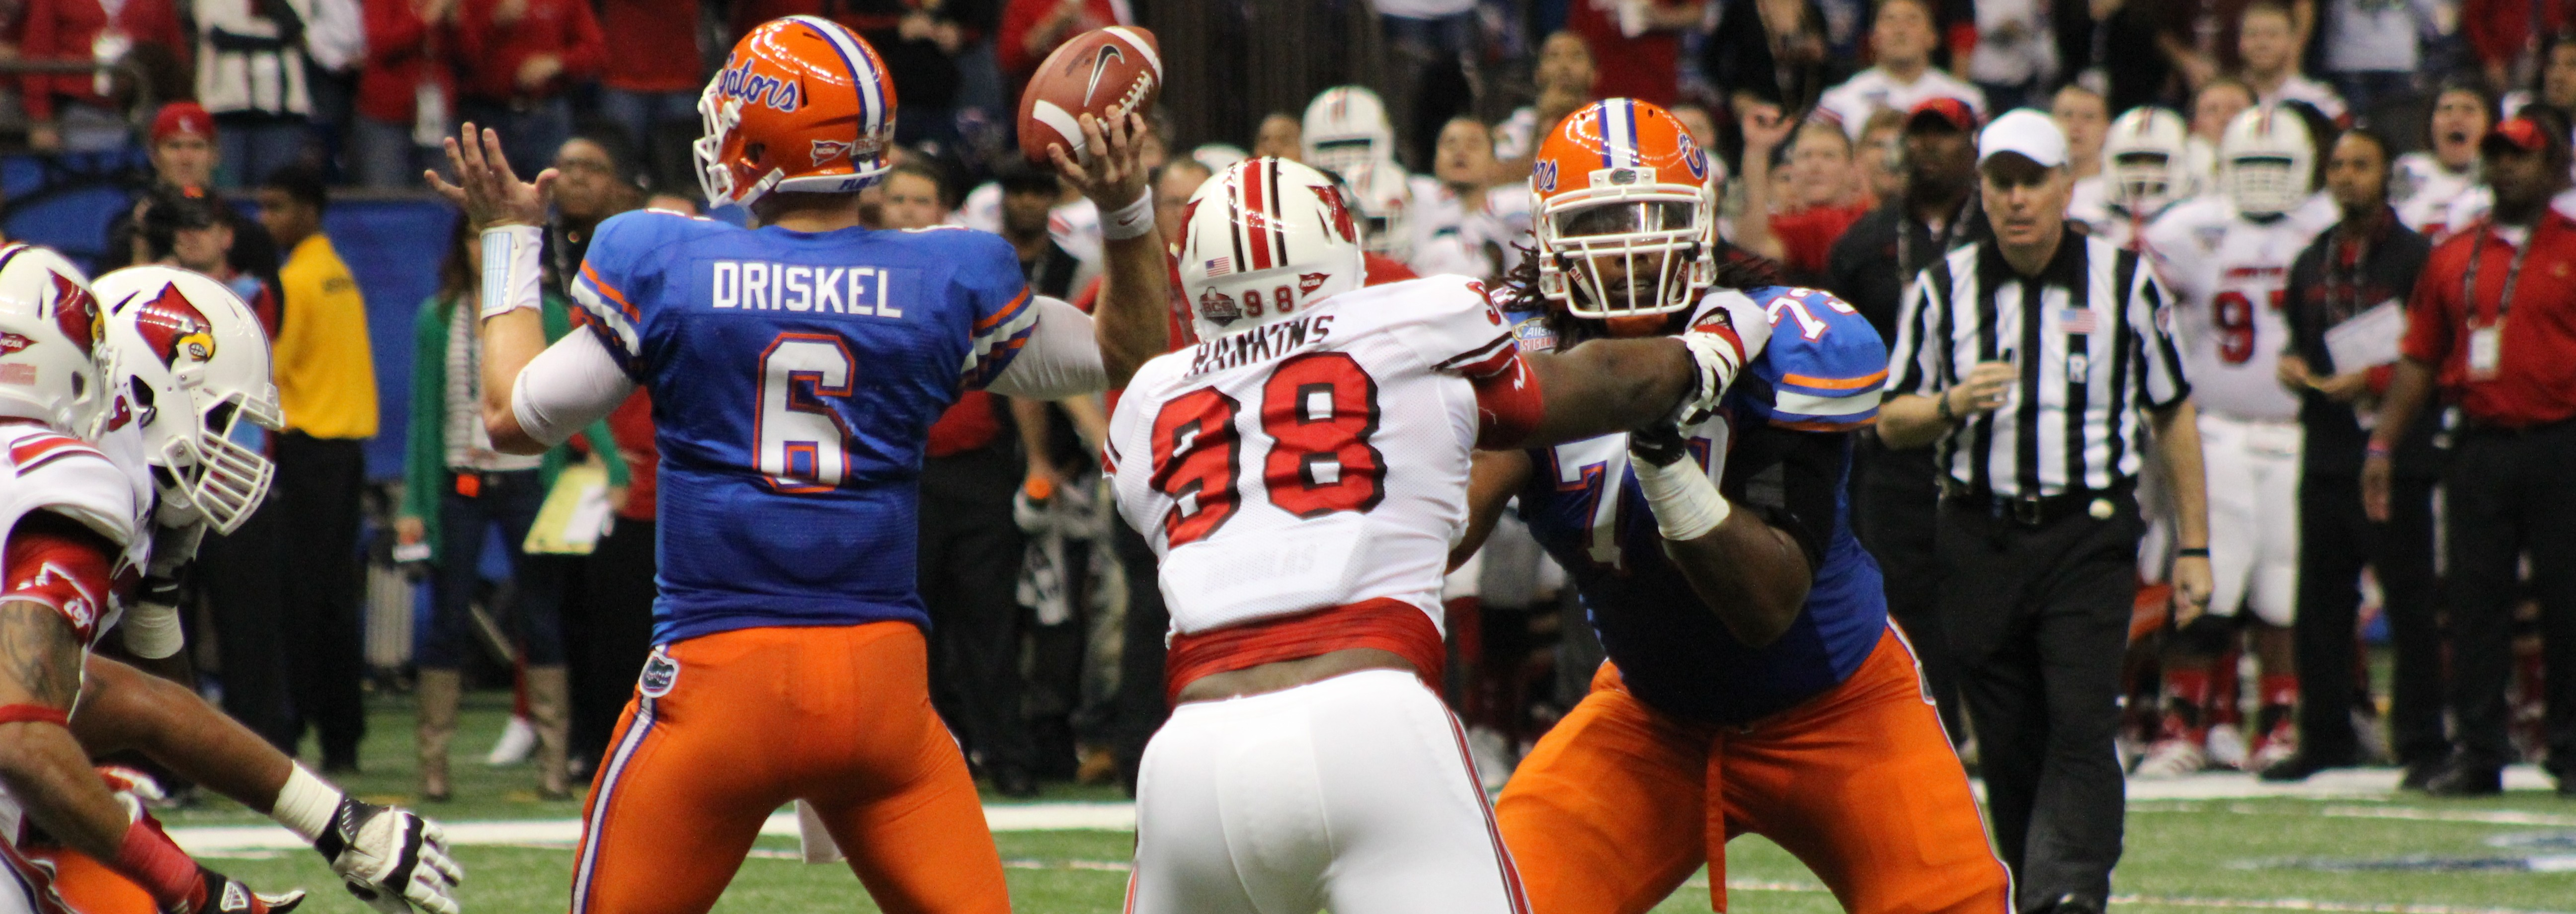 Sheldon Rankins Louisville vs. Florida 2013 Sugar Bowl. Photo by Mike Lindsay